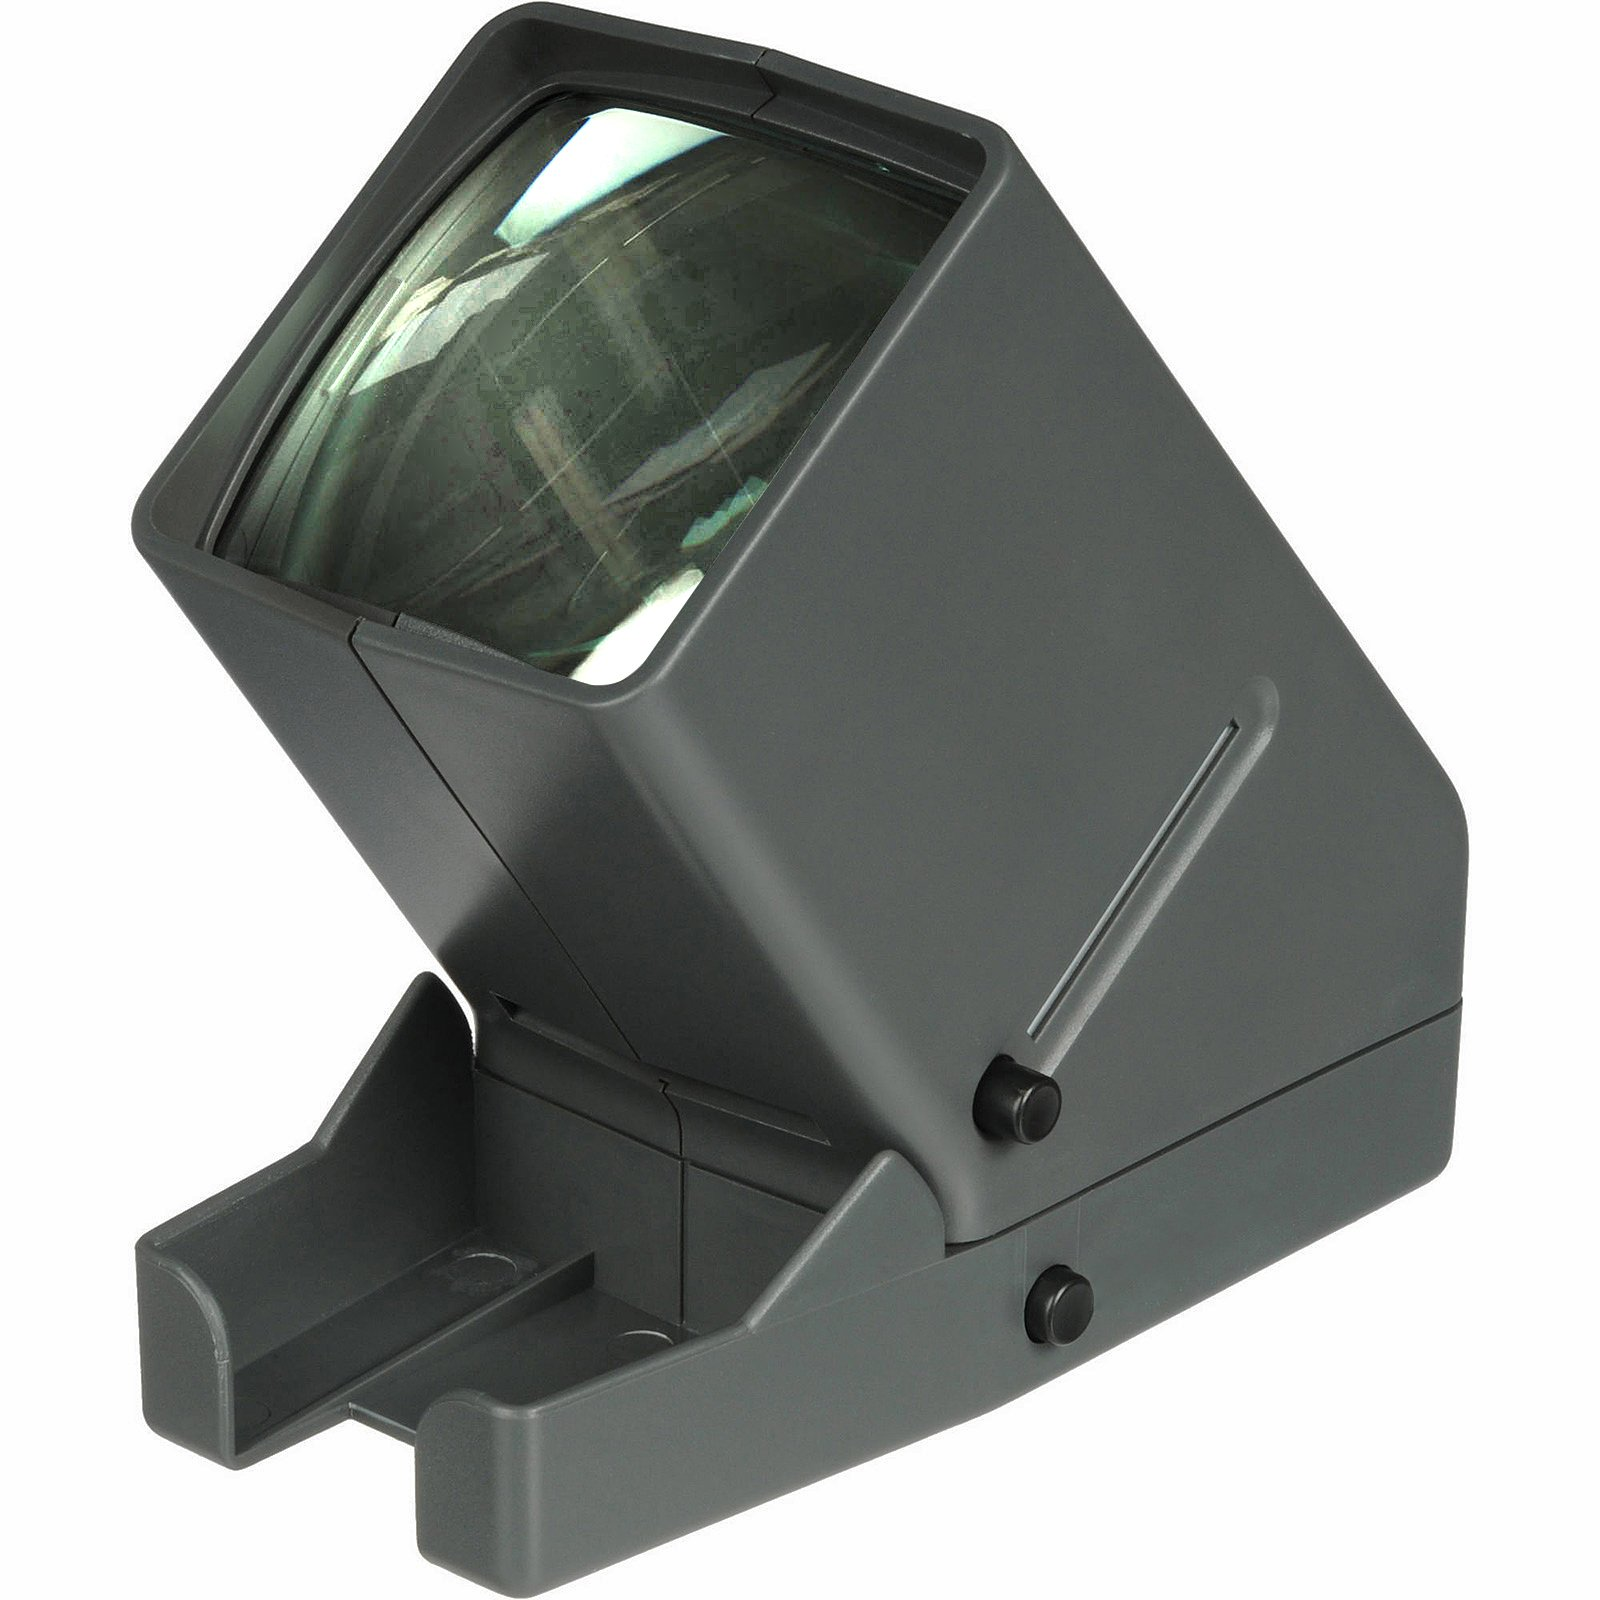 Zuma SV-3 LED 35mm Film Slide Viewer by Zuma